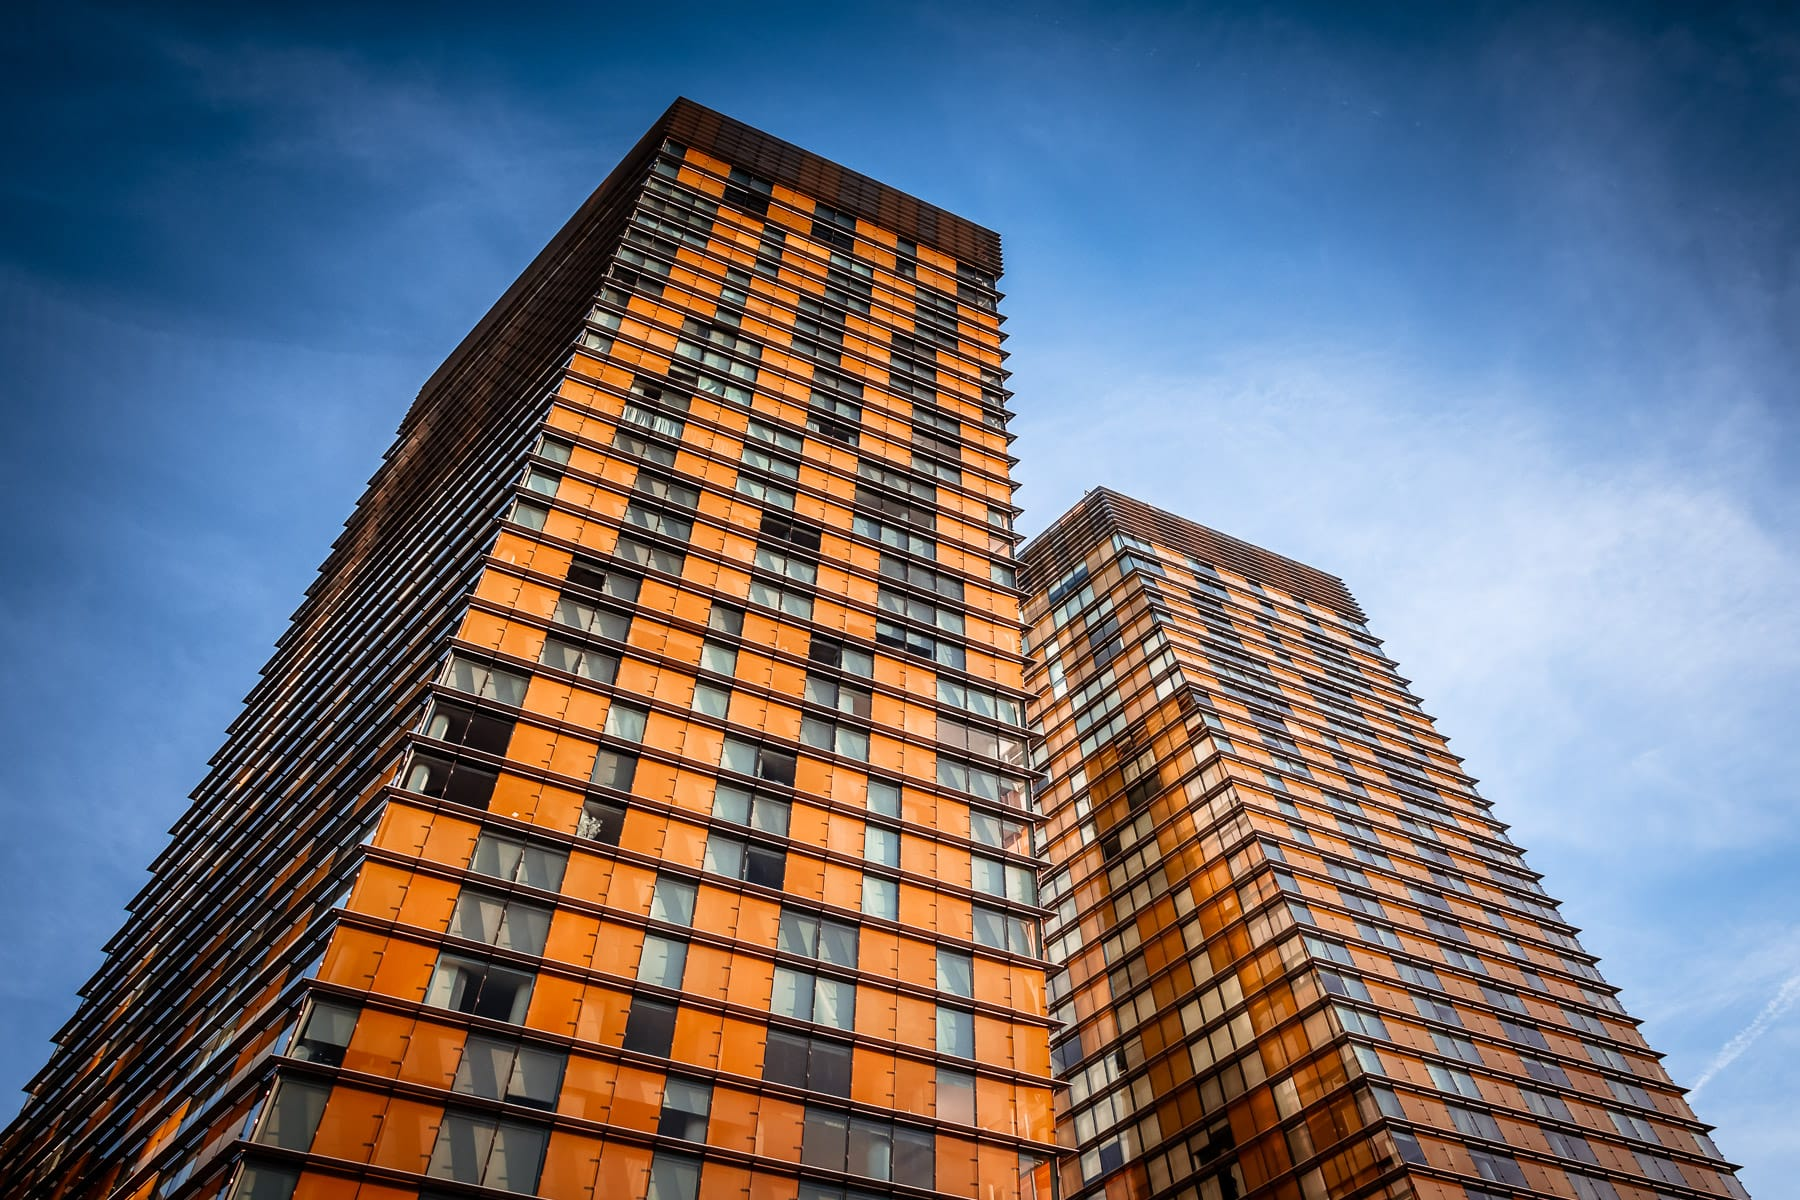 The Veer Towers rise into the blue Nevada sky at CityCenter, Las Vegas.